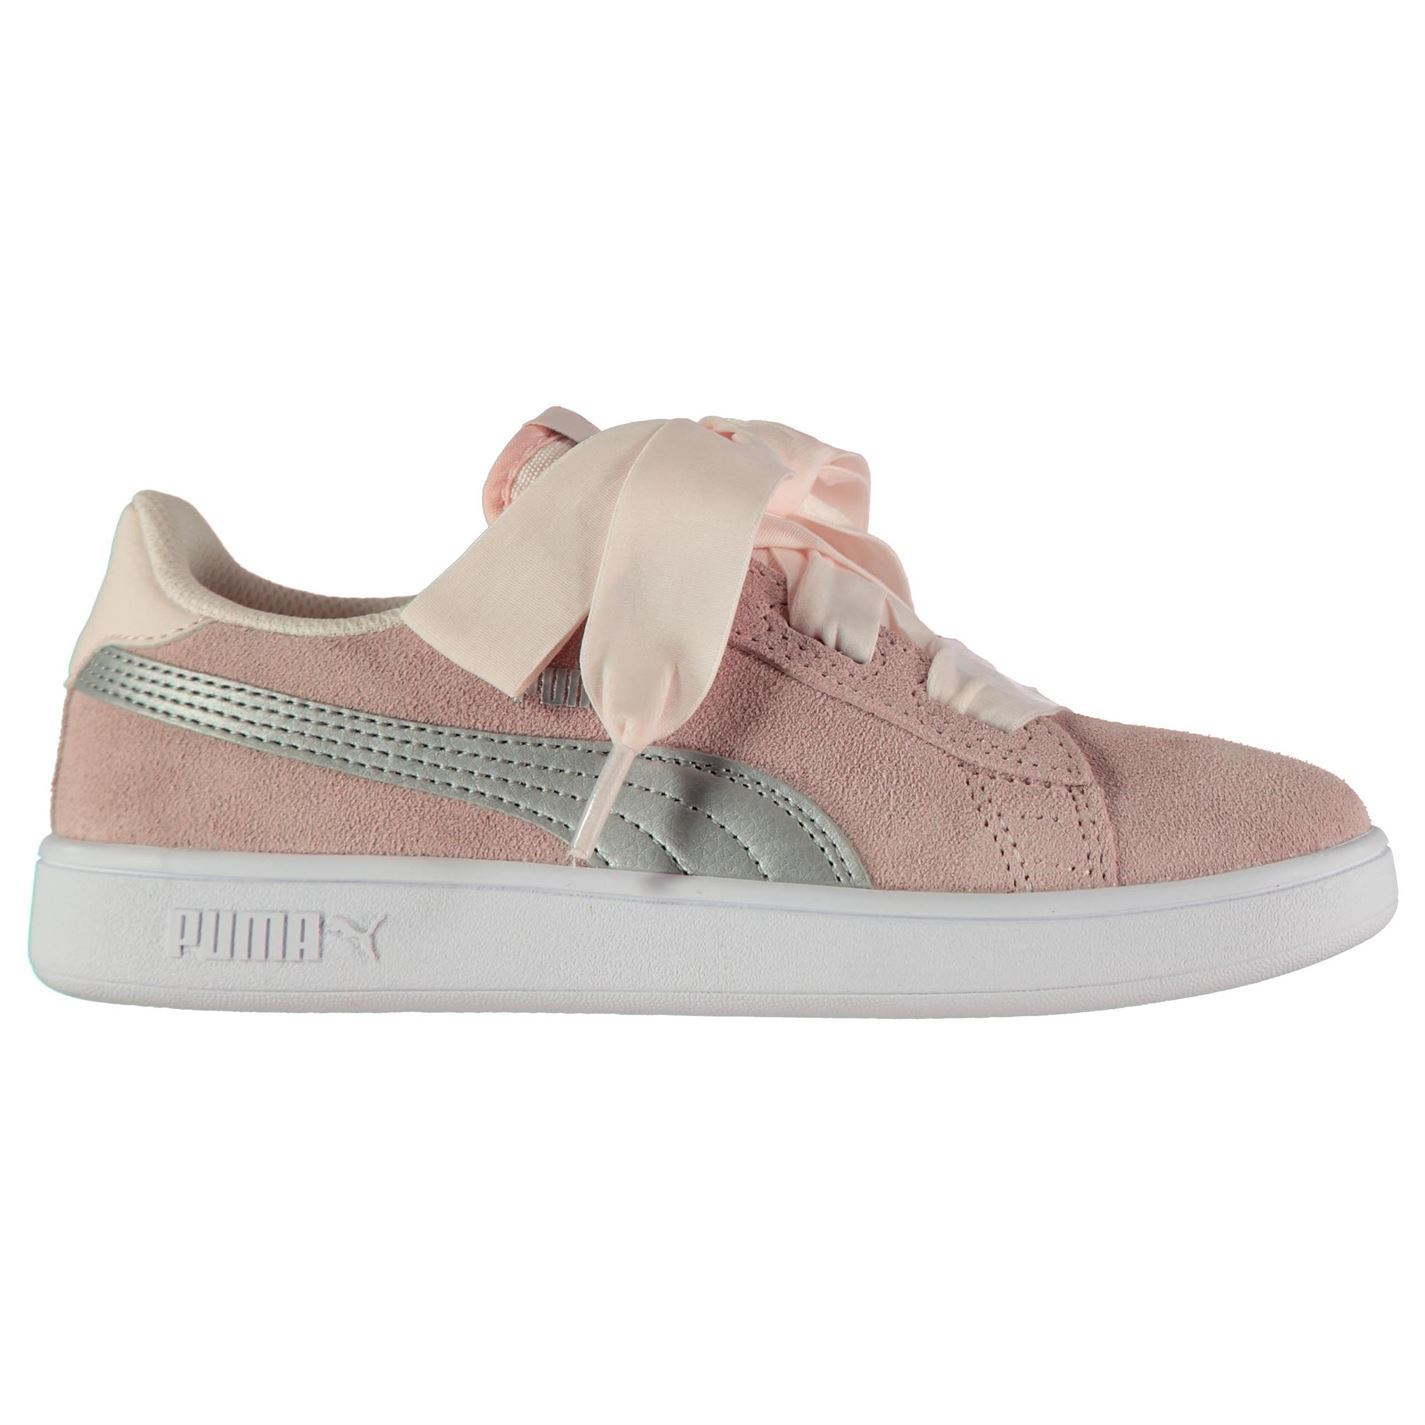 Puma Smash Ribbon Child Girls Trainers The Kids Puma Smash Ribbon Trainers  are perfect for everyday casual wear 531cb3ff6